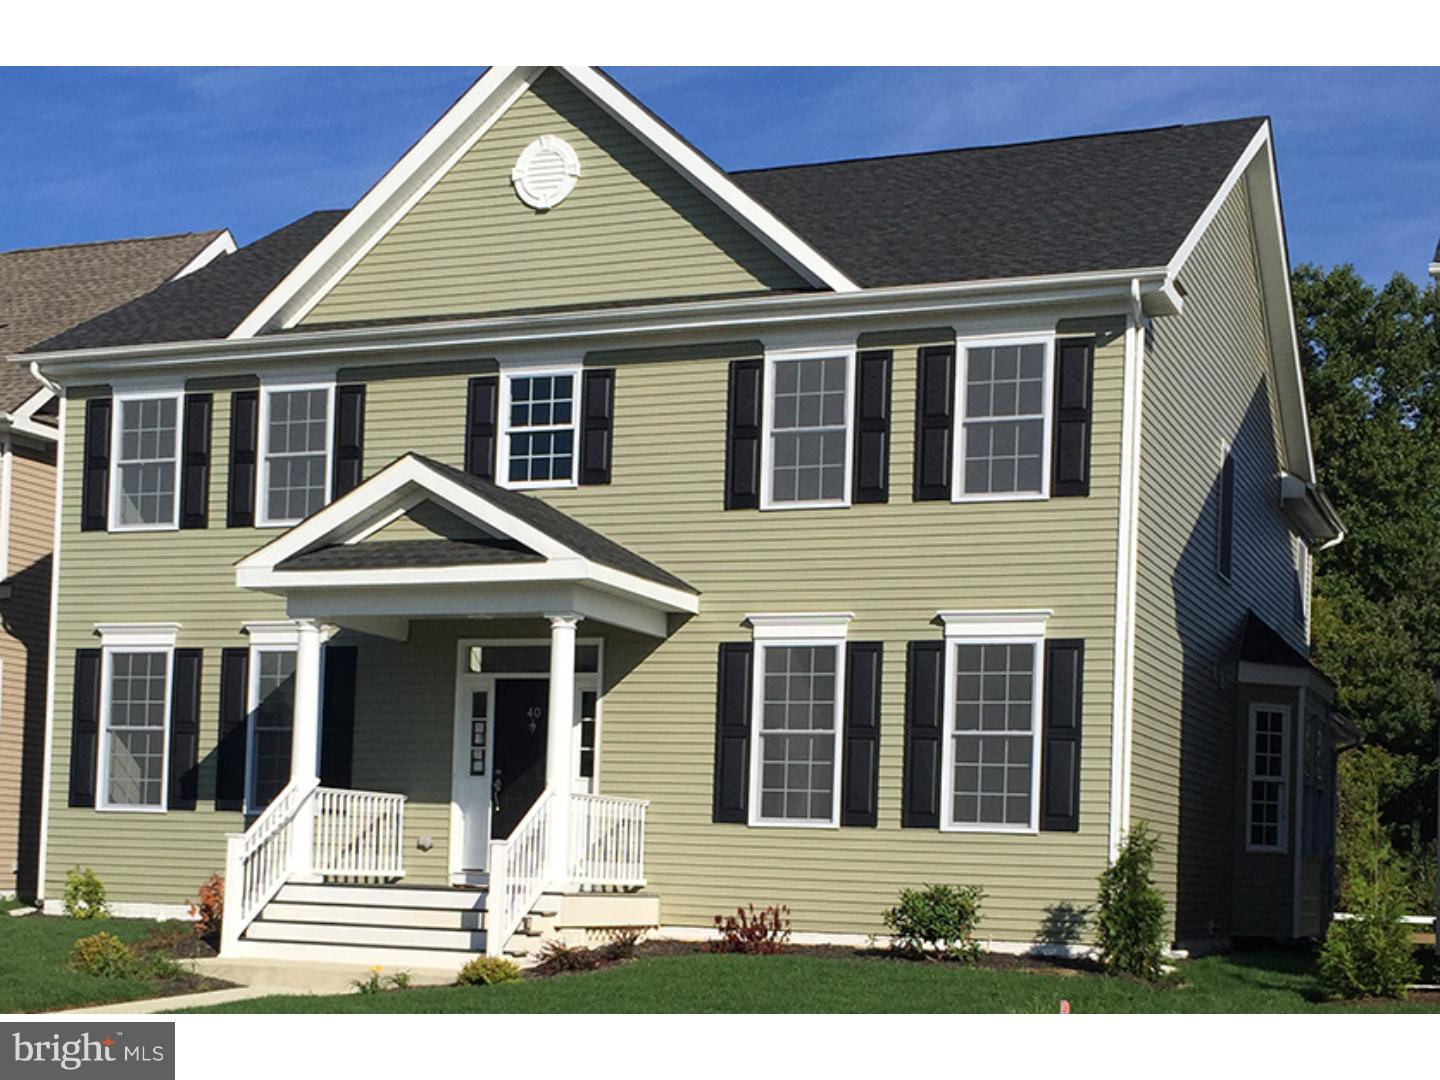 16 ANTRON BROWN WAY, CHESTERFIELD TWP, NJ 08515